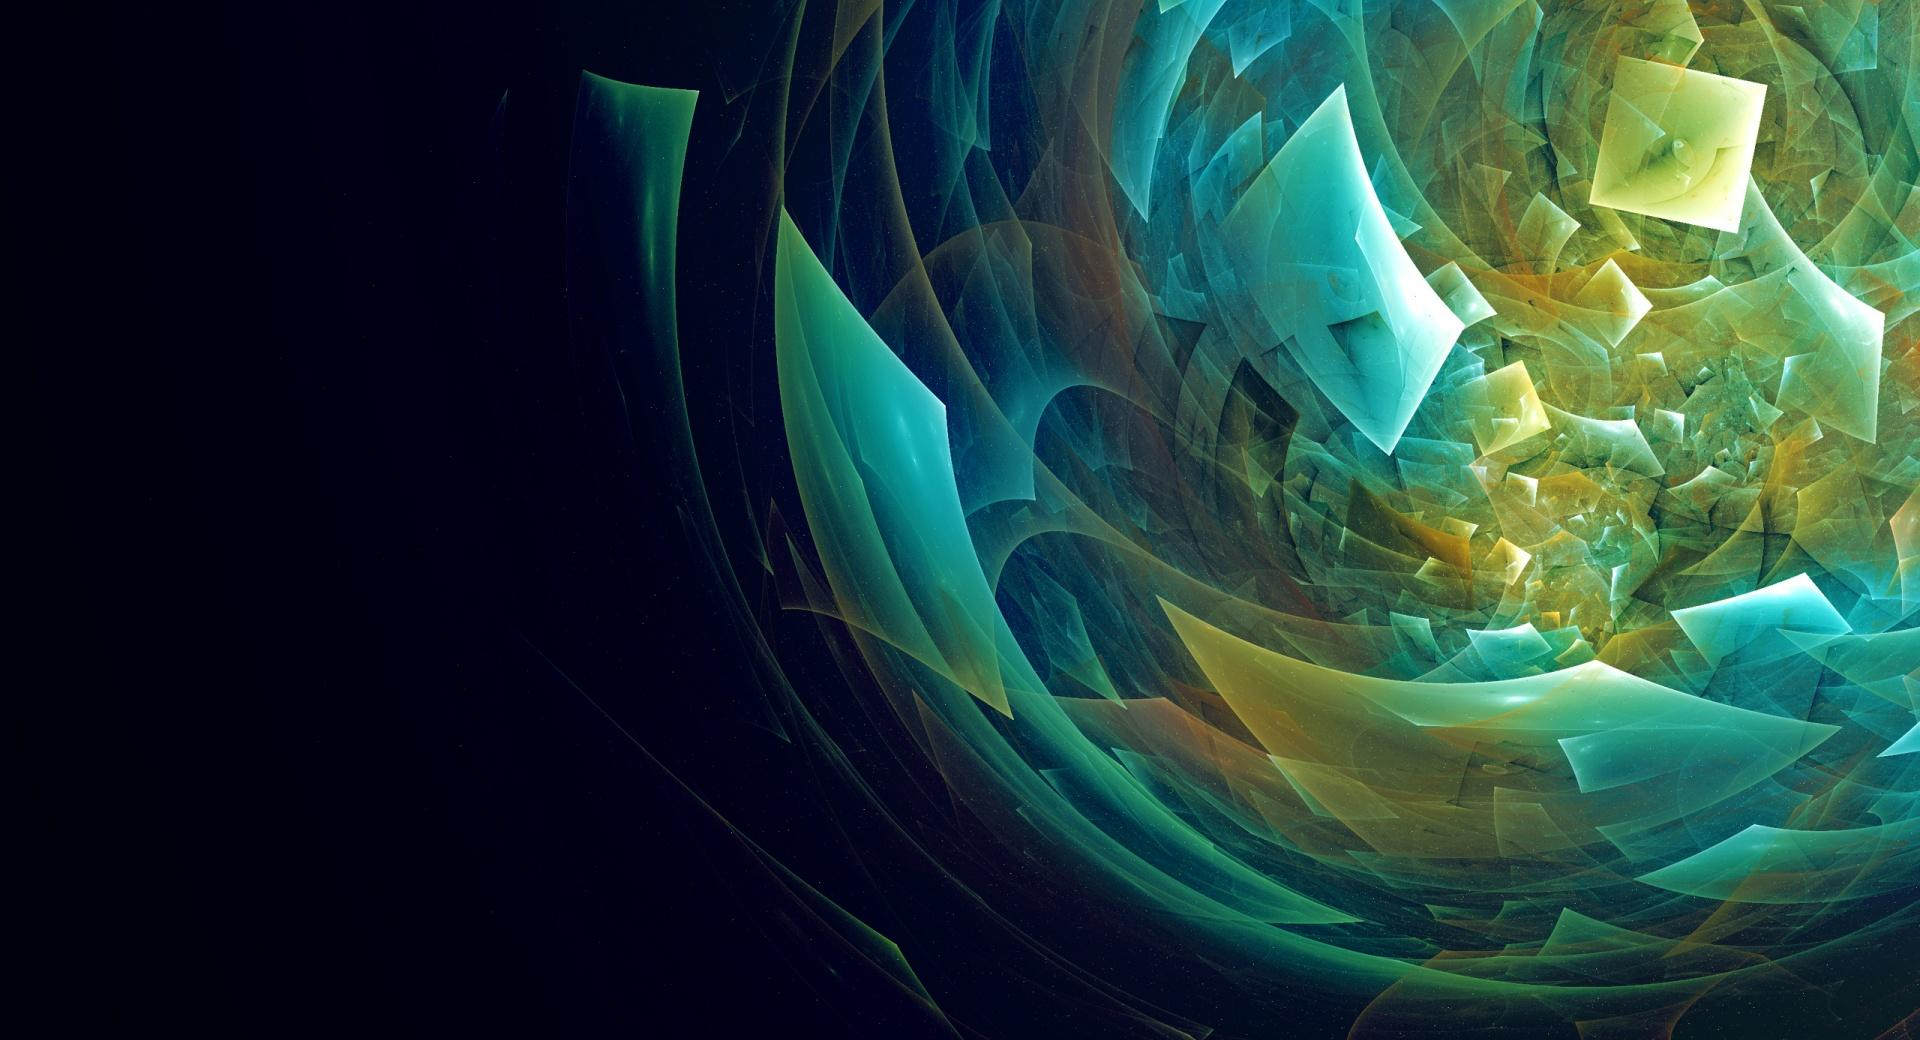 Abstract Sphere wallpapers HD quality